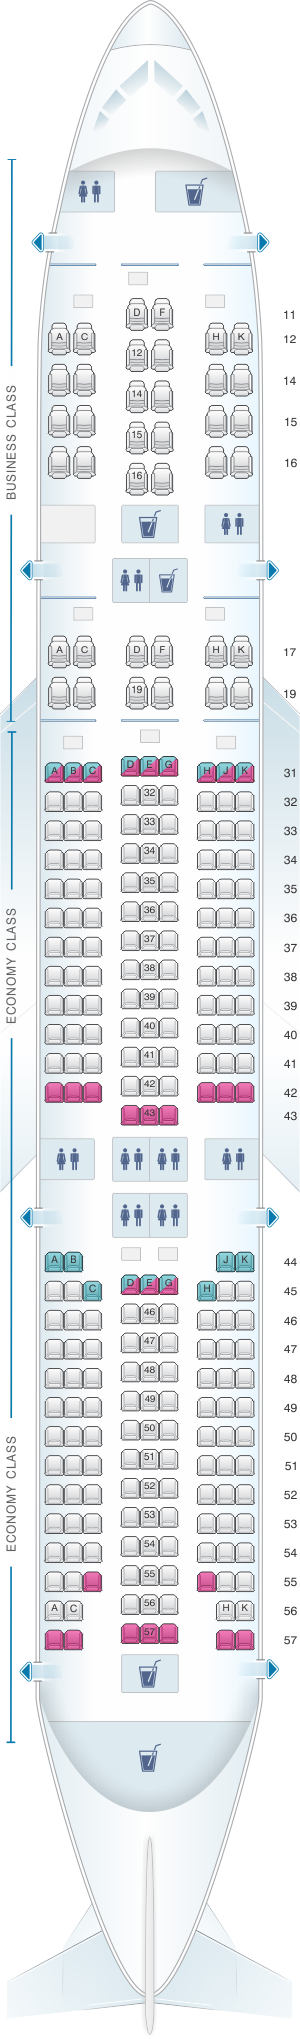 Seat map for Singapore Airlines Boeing B777 200 SQ Series